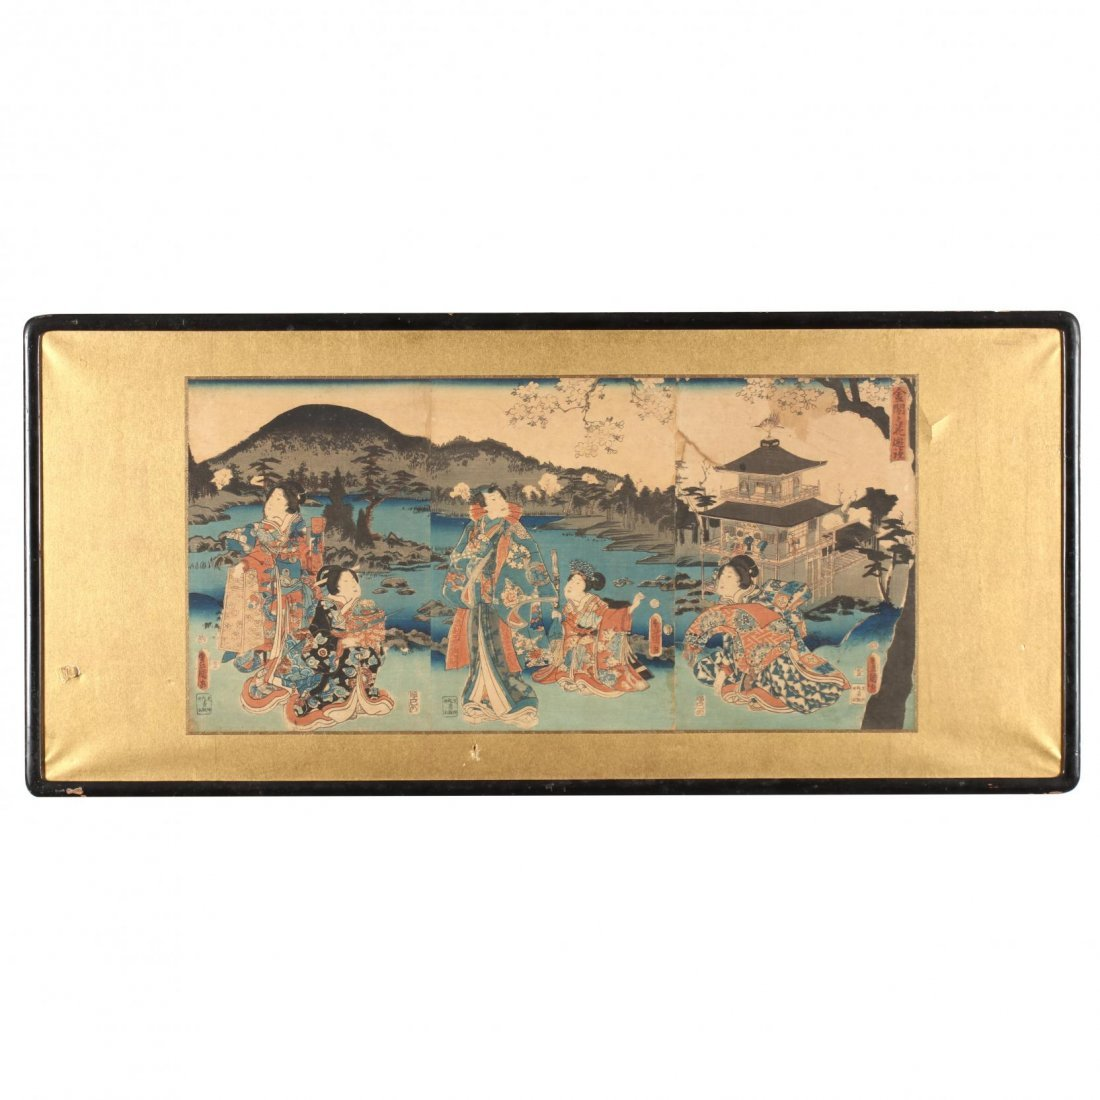 Group of Japanese Woodblock Prints - 2